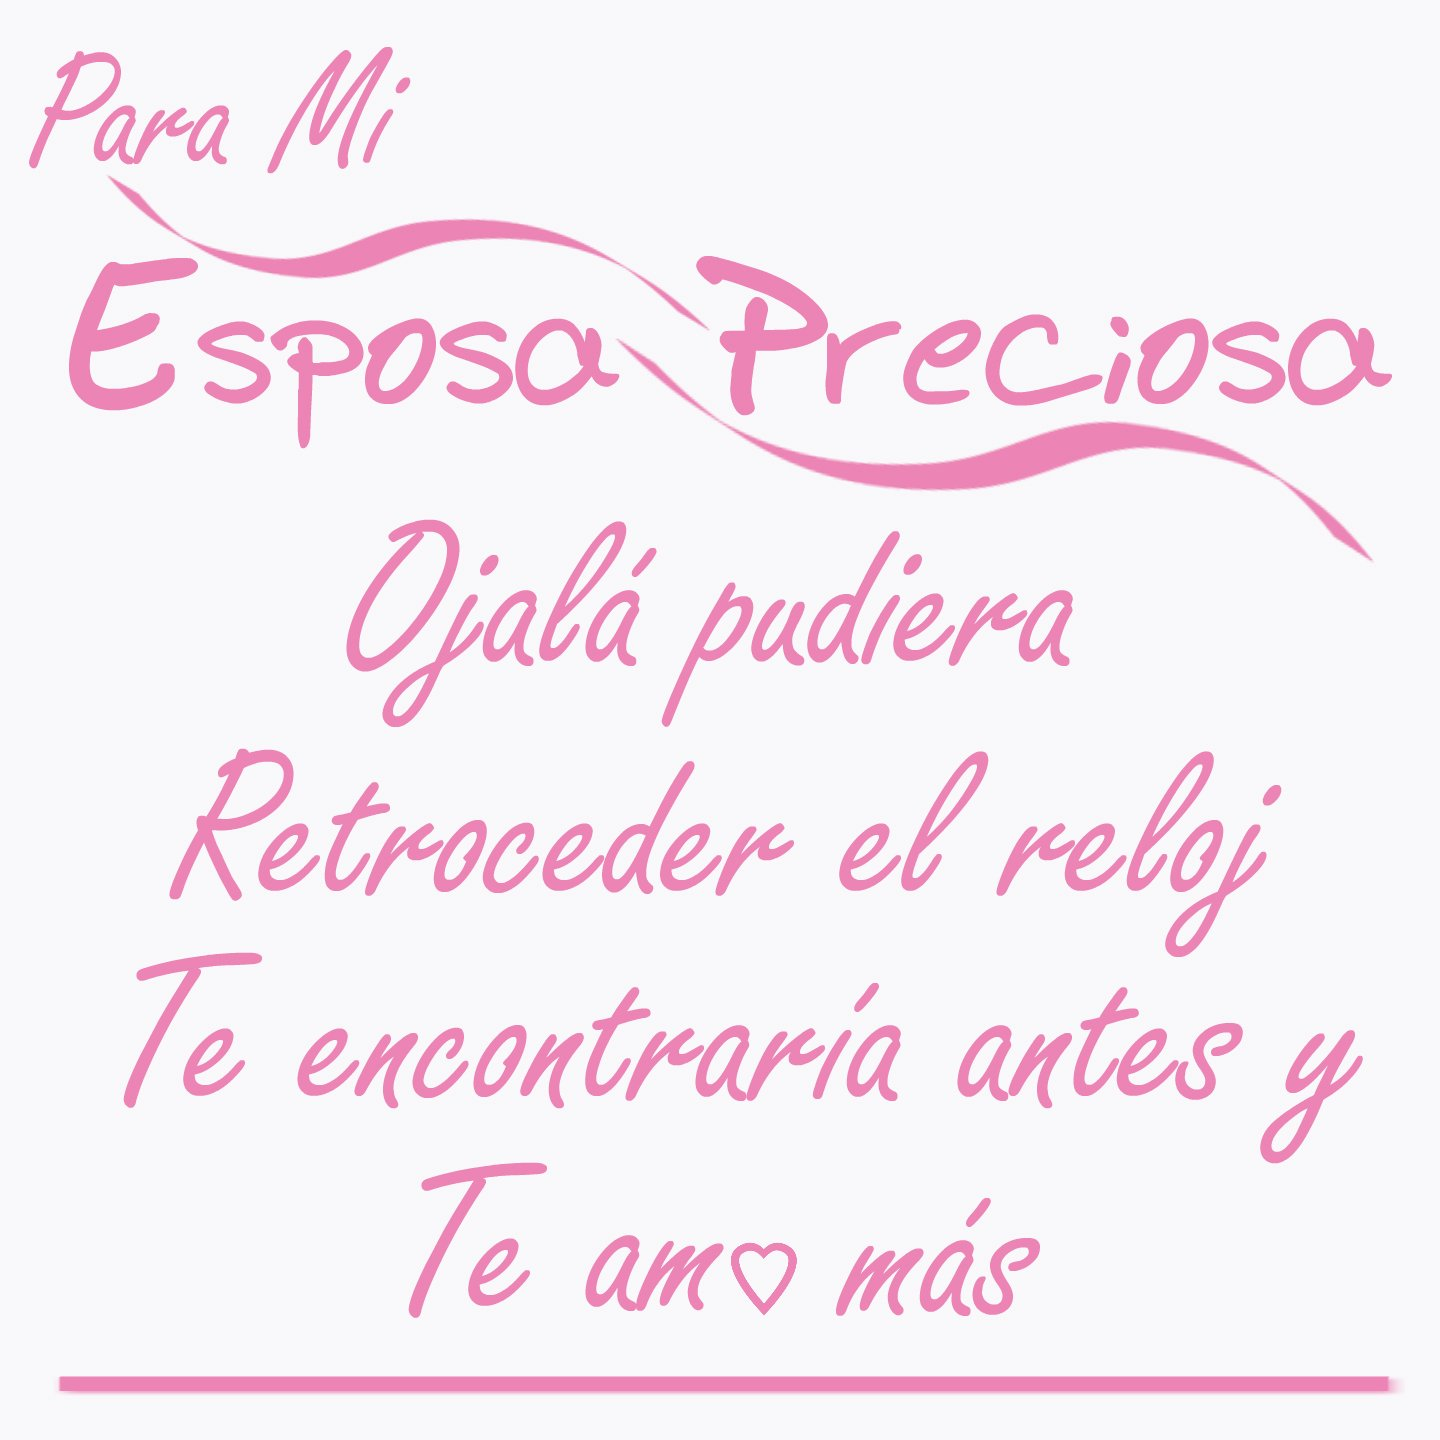 The Best Wife Wall Decal Pledge-Para Mi Esposa Preciosa-a SOFT PINK Vinyl Wall Decal Espanol-Saying How I Love You in Spanish-A Happy Marriage-Shes the ...